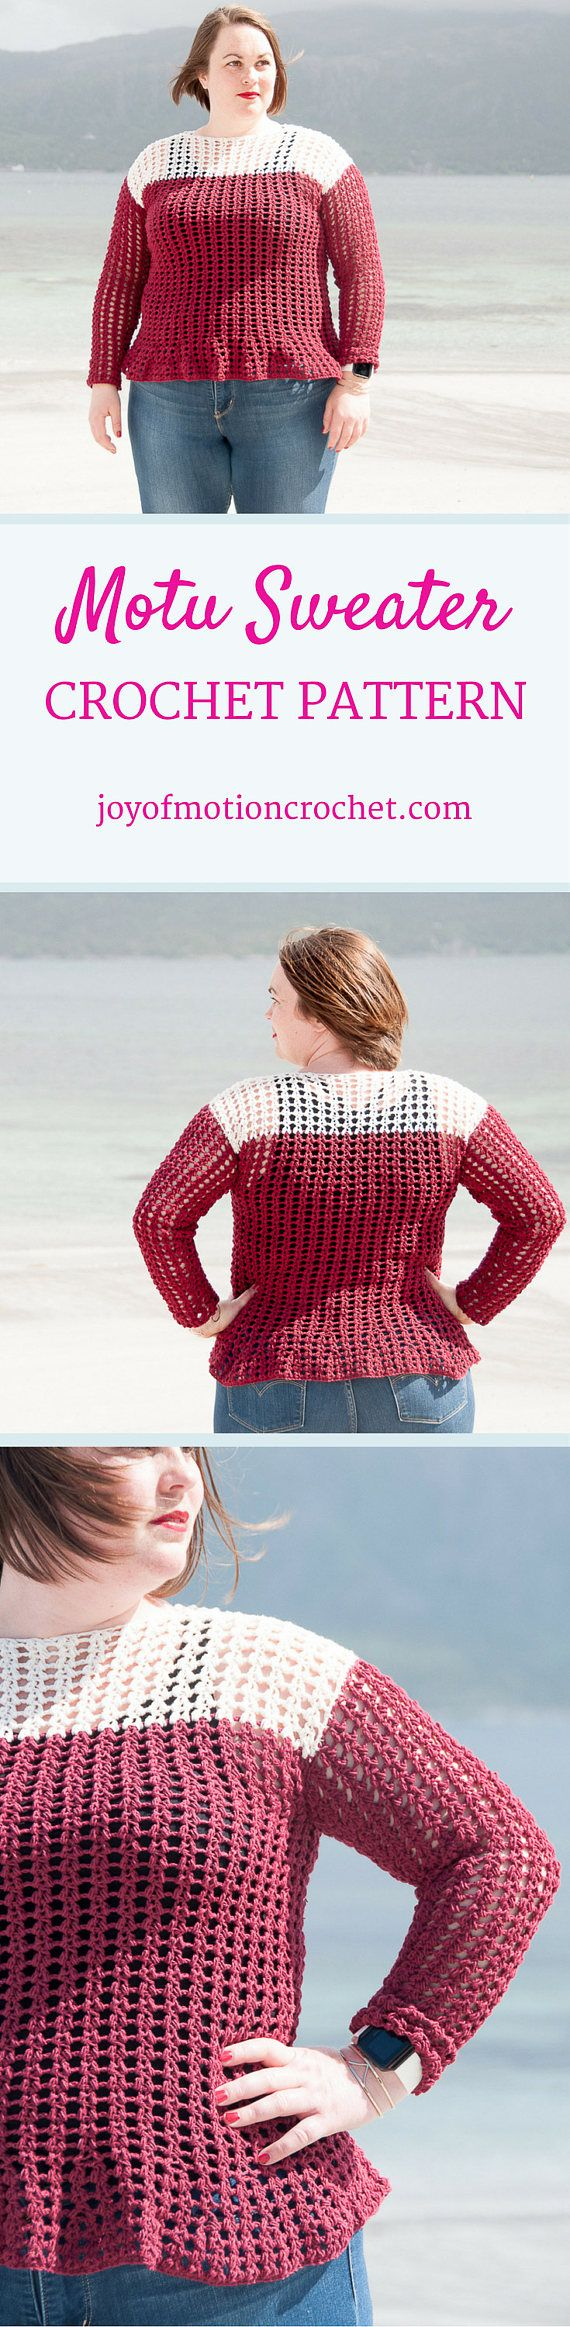 Motu Sweater Crochet Pattern  ★ Crochet pattern for the Motu Sweater, a lacy & easy crochet sweater ★ Perfect for the warmer season. ★ XS – XL. ★ Skill level: EASY ★ Language: English / US crochet terms.  The Motu Sweater crochet pattern are a lacy sweater that's perfect all year long. It's designed with cotton yarn, however you can easily make it your summer favorite with the use of wool yarn. The crochet pattern has skill lever easy & you need to learn a new crochet stitch to m...